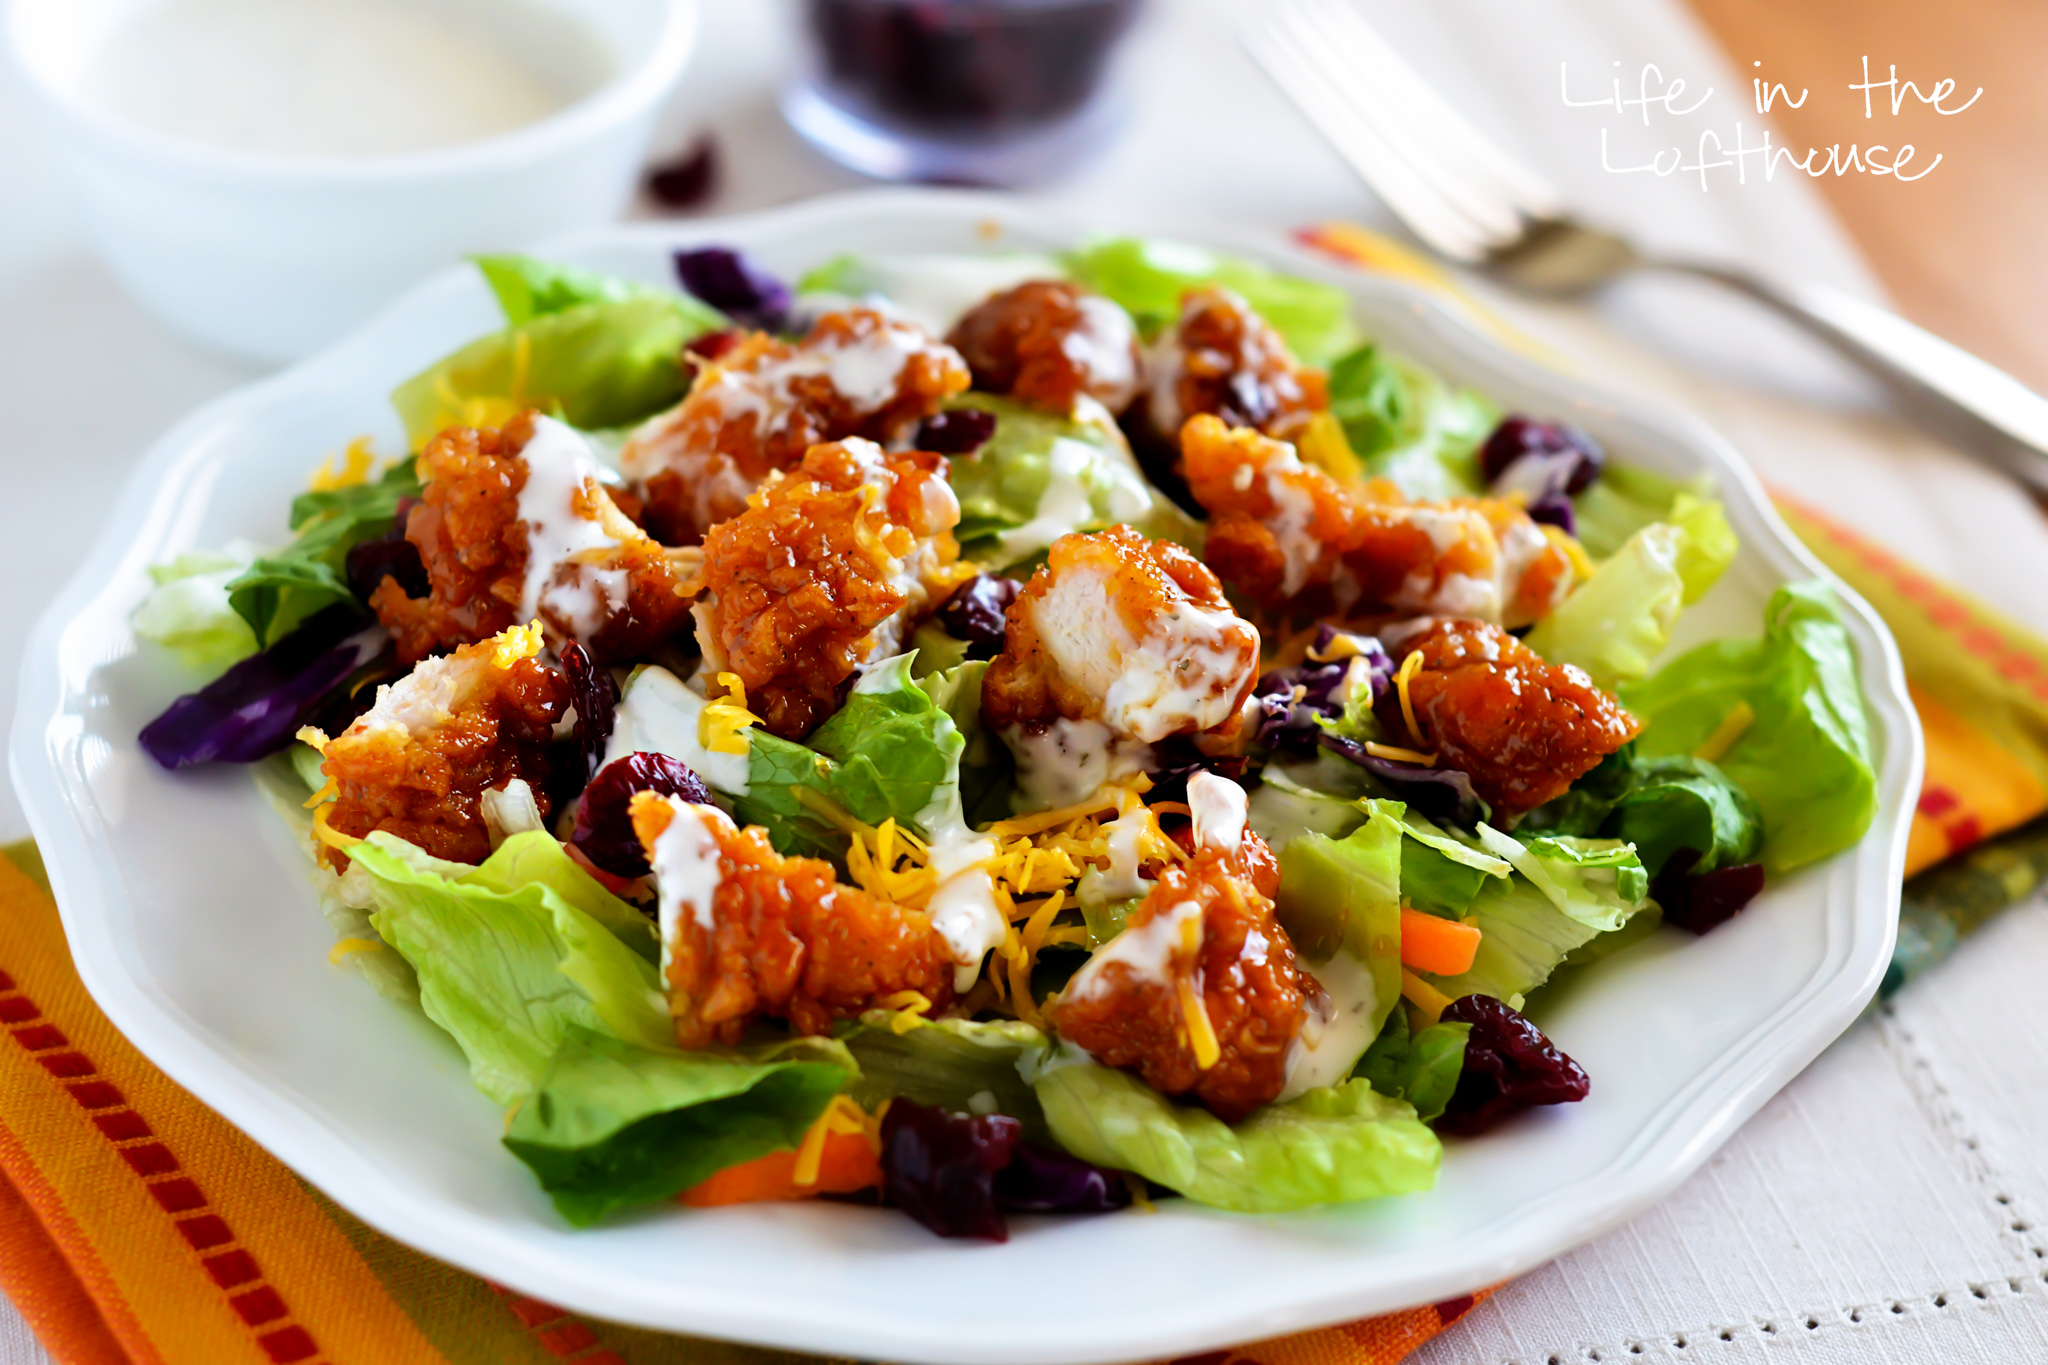 This delicious salad is full of crunchy romaine lettuce, dried cranberries, shredded carrots, cheese, and of course those amazing sticky chicken fingers. Life-in-the-Lofthouse.com